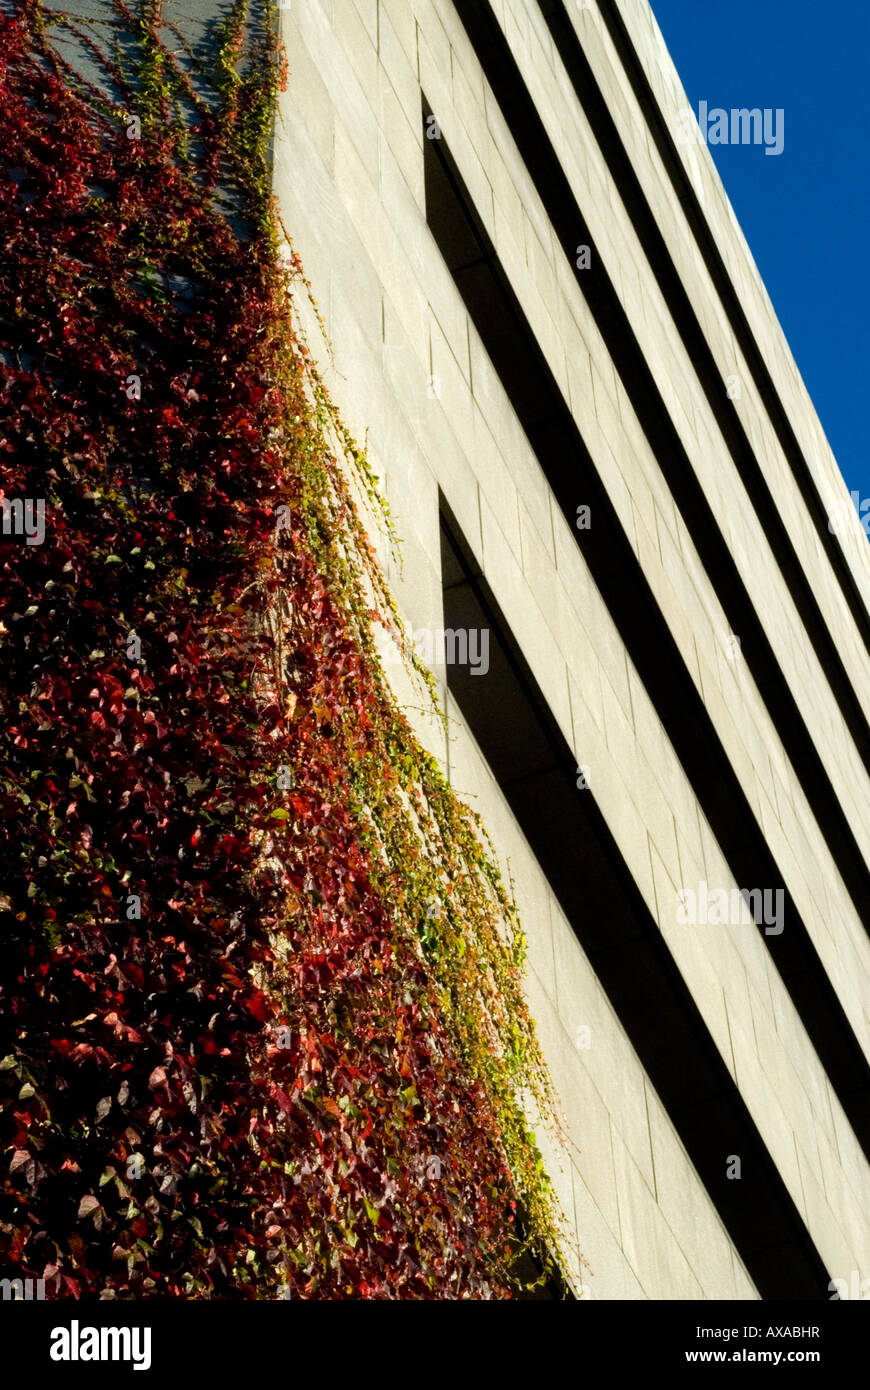 A corner of Wood Quay civic buildings in Dublin Ireland covered with ivy - Stock Image